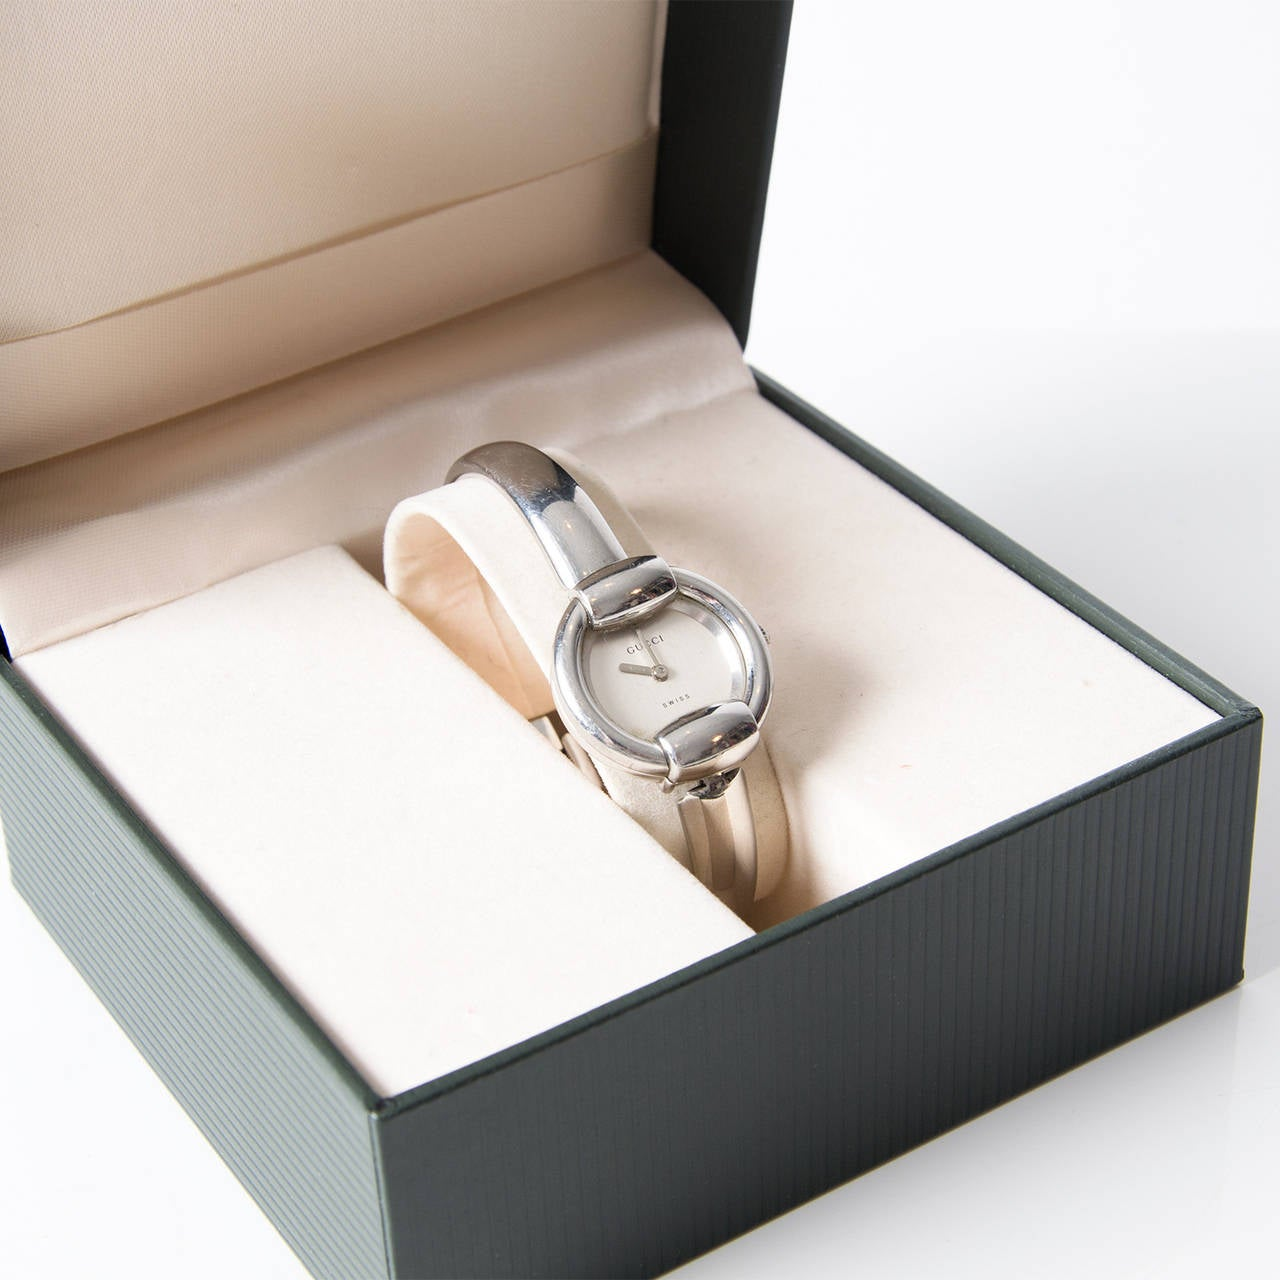 d81b5717280 Contemporary Gucci 1400l Stainless Steel Silver Tone Watch For Sale